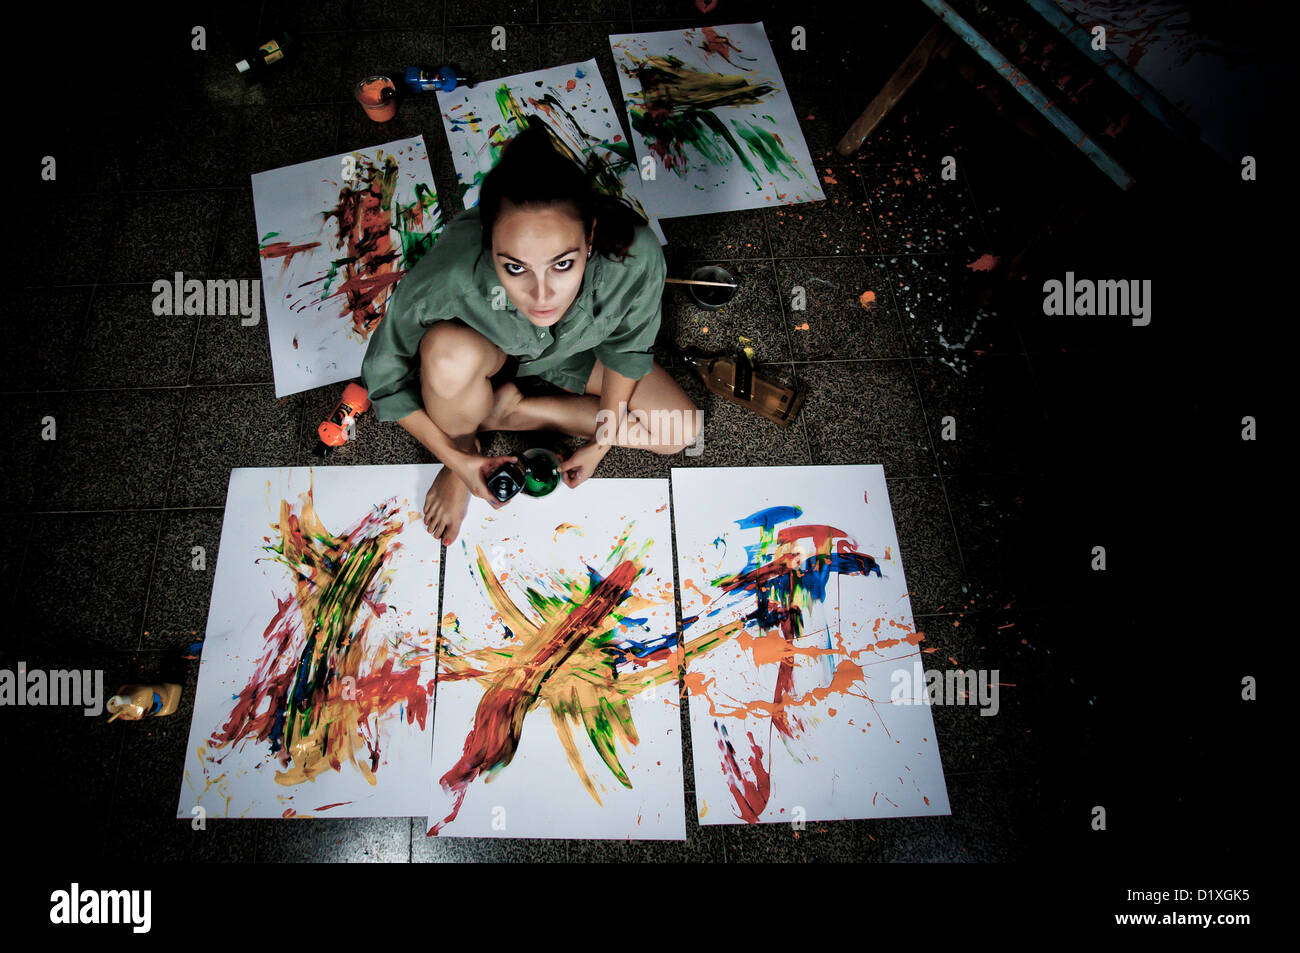 A young female artist painter works in her studio - Stock Image